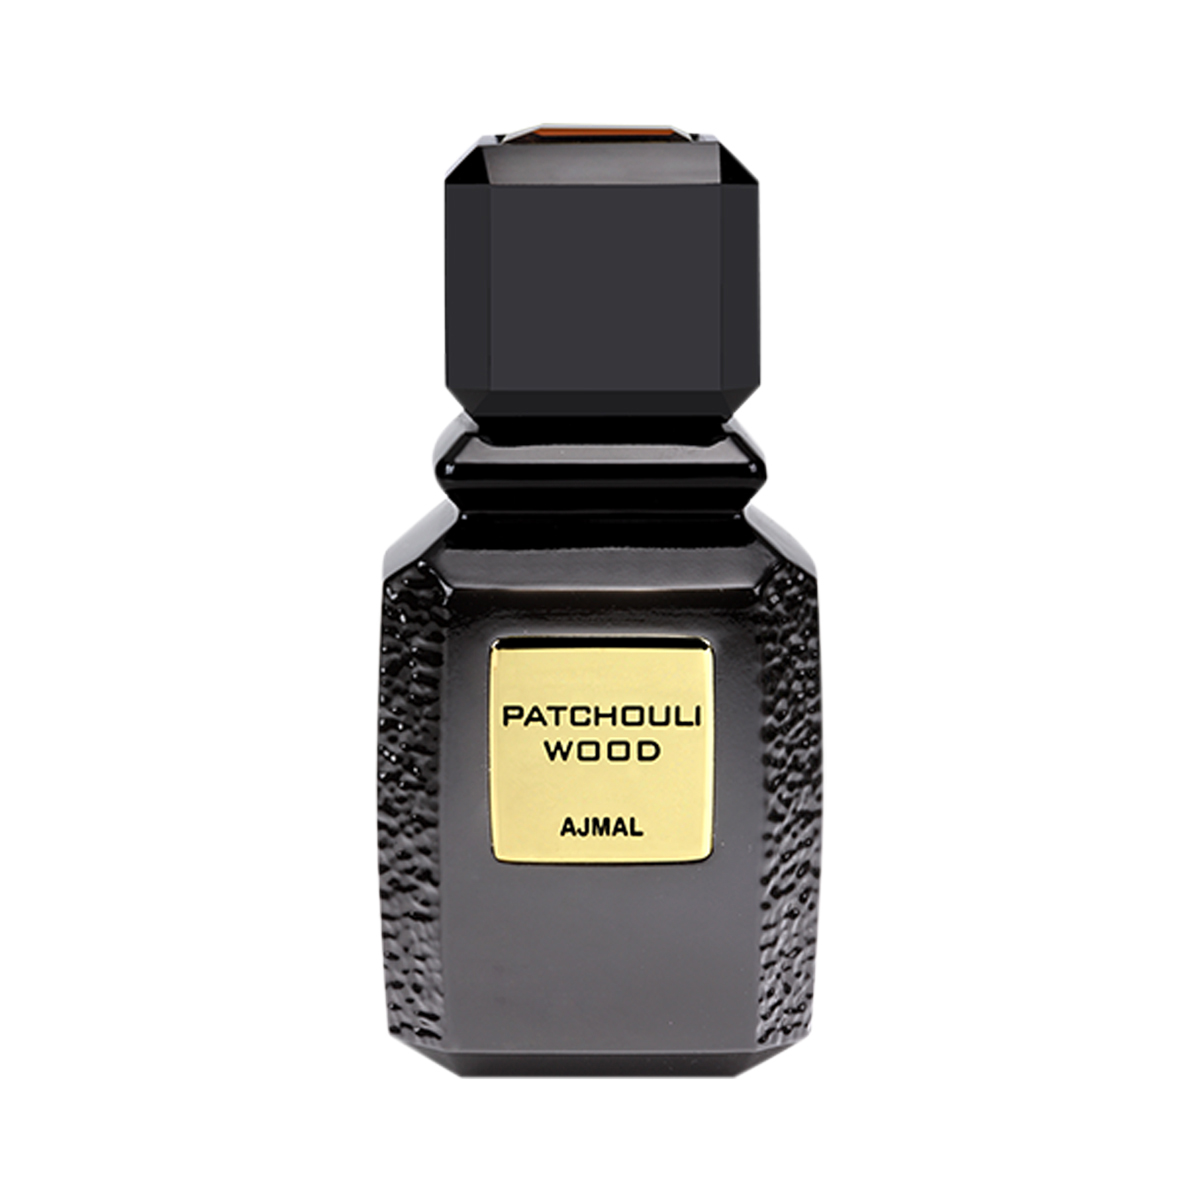 Купить Парфюмерная вода Ajmal, Ajmal Patchouli Wood 100ml тестер, Объединённые Арабские Эмираты